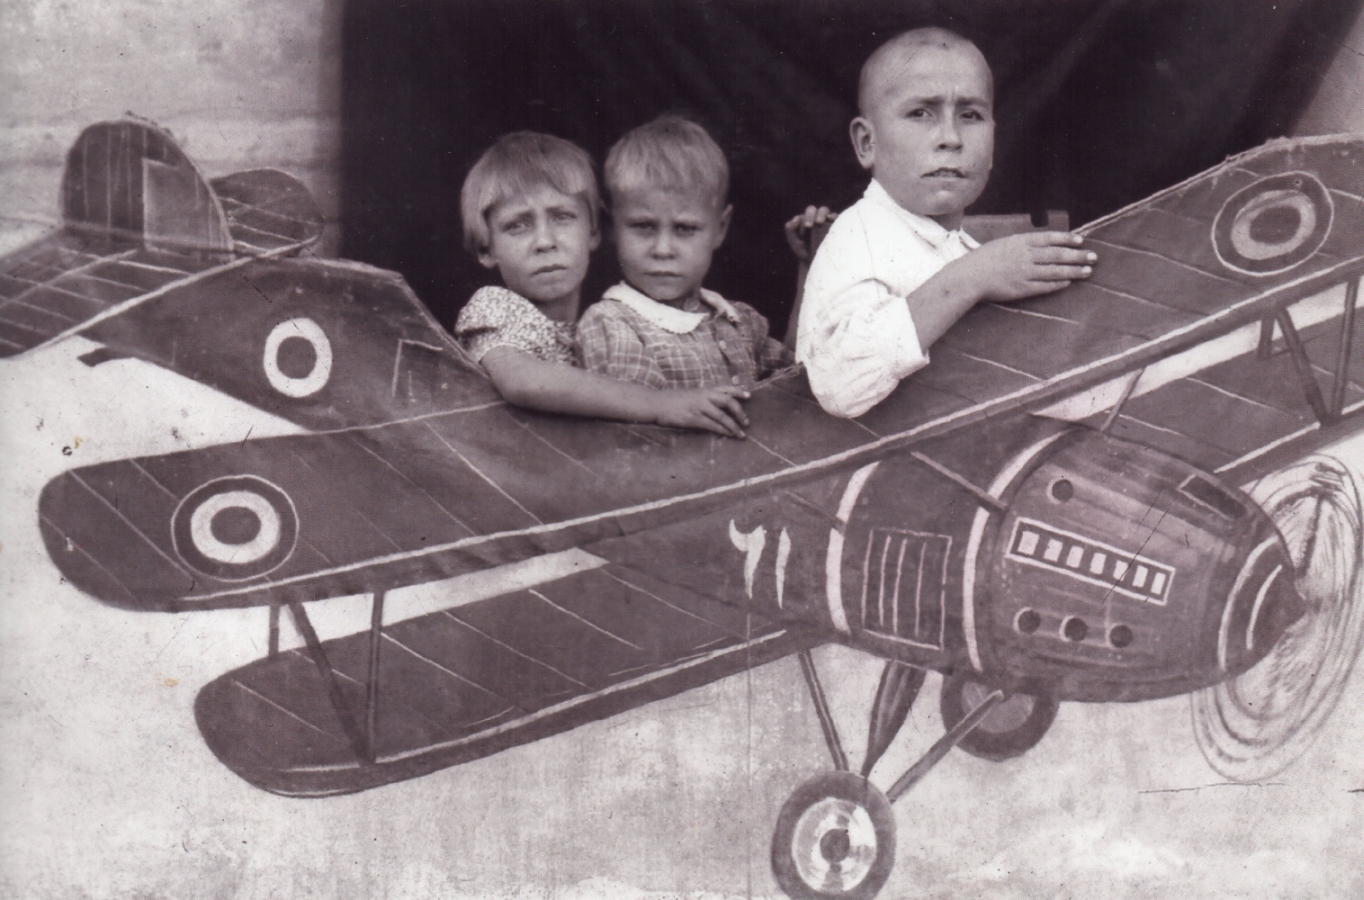 Danuta, Alina and  Tadeusz as the pilot in front, all looking very serious, sitting within a cut-out aeroplane.